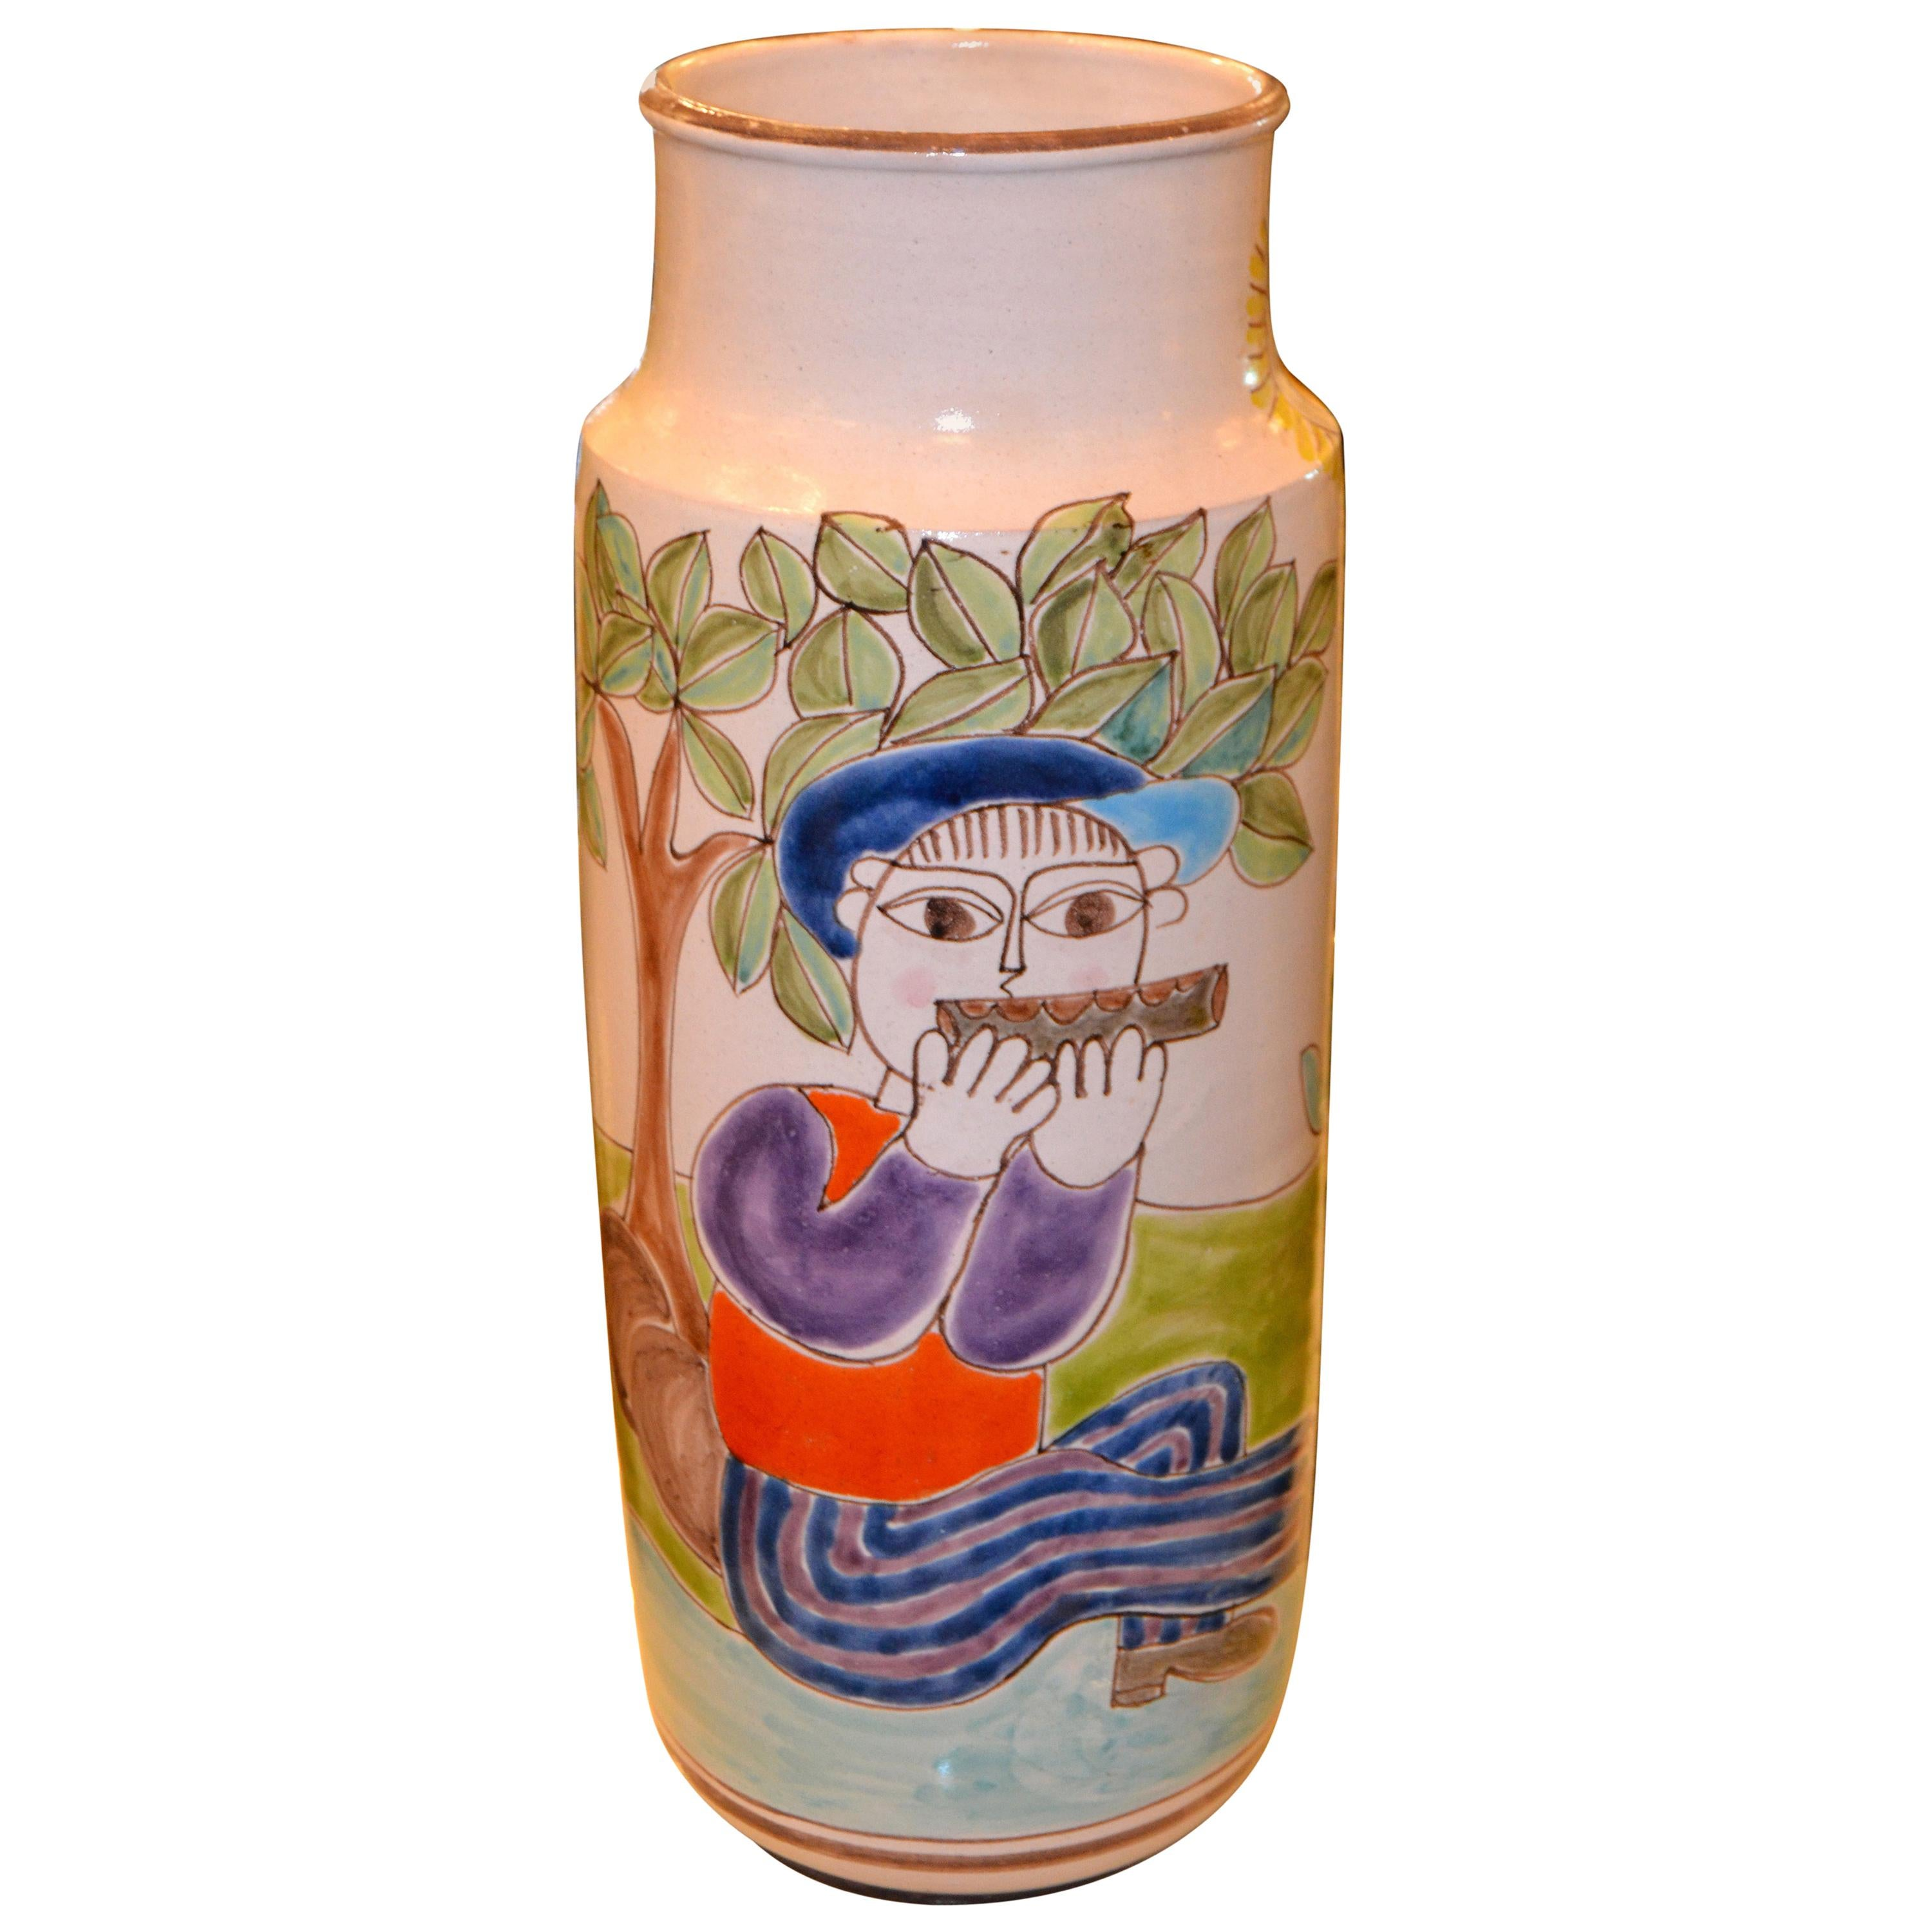 Desimone Hand Painted Tall Art Pottery Flute Player Flower Vase, Vessel, Italy